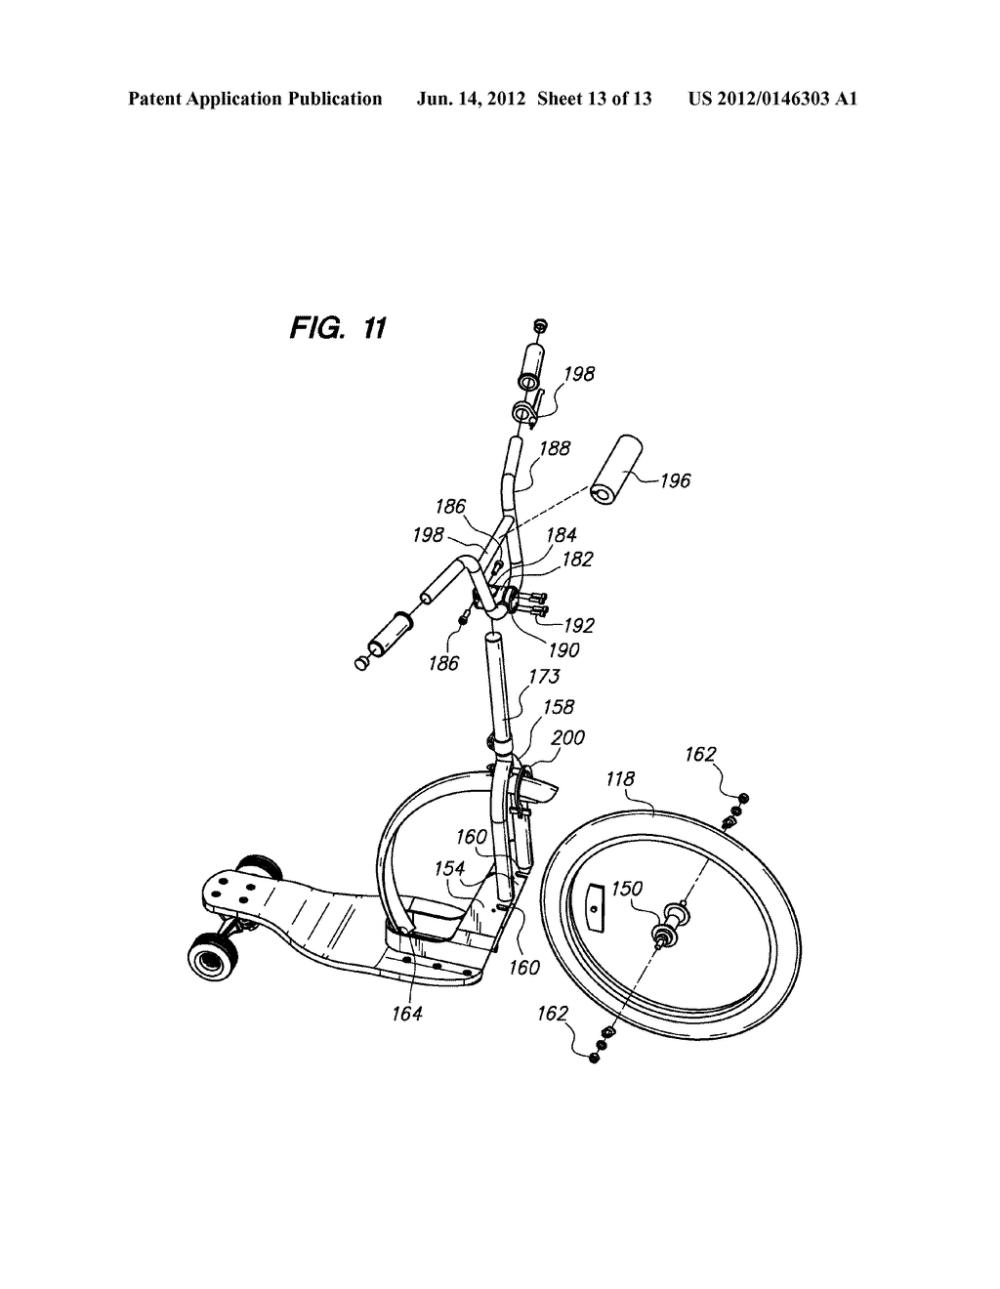 medium resolution of three wheeled scooter with rear skate truck and fixed front wheel diagram schematic and image 14